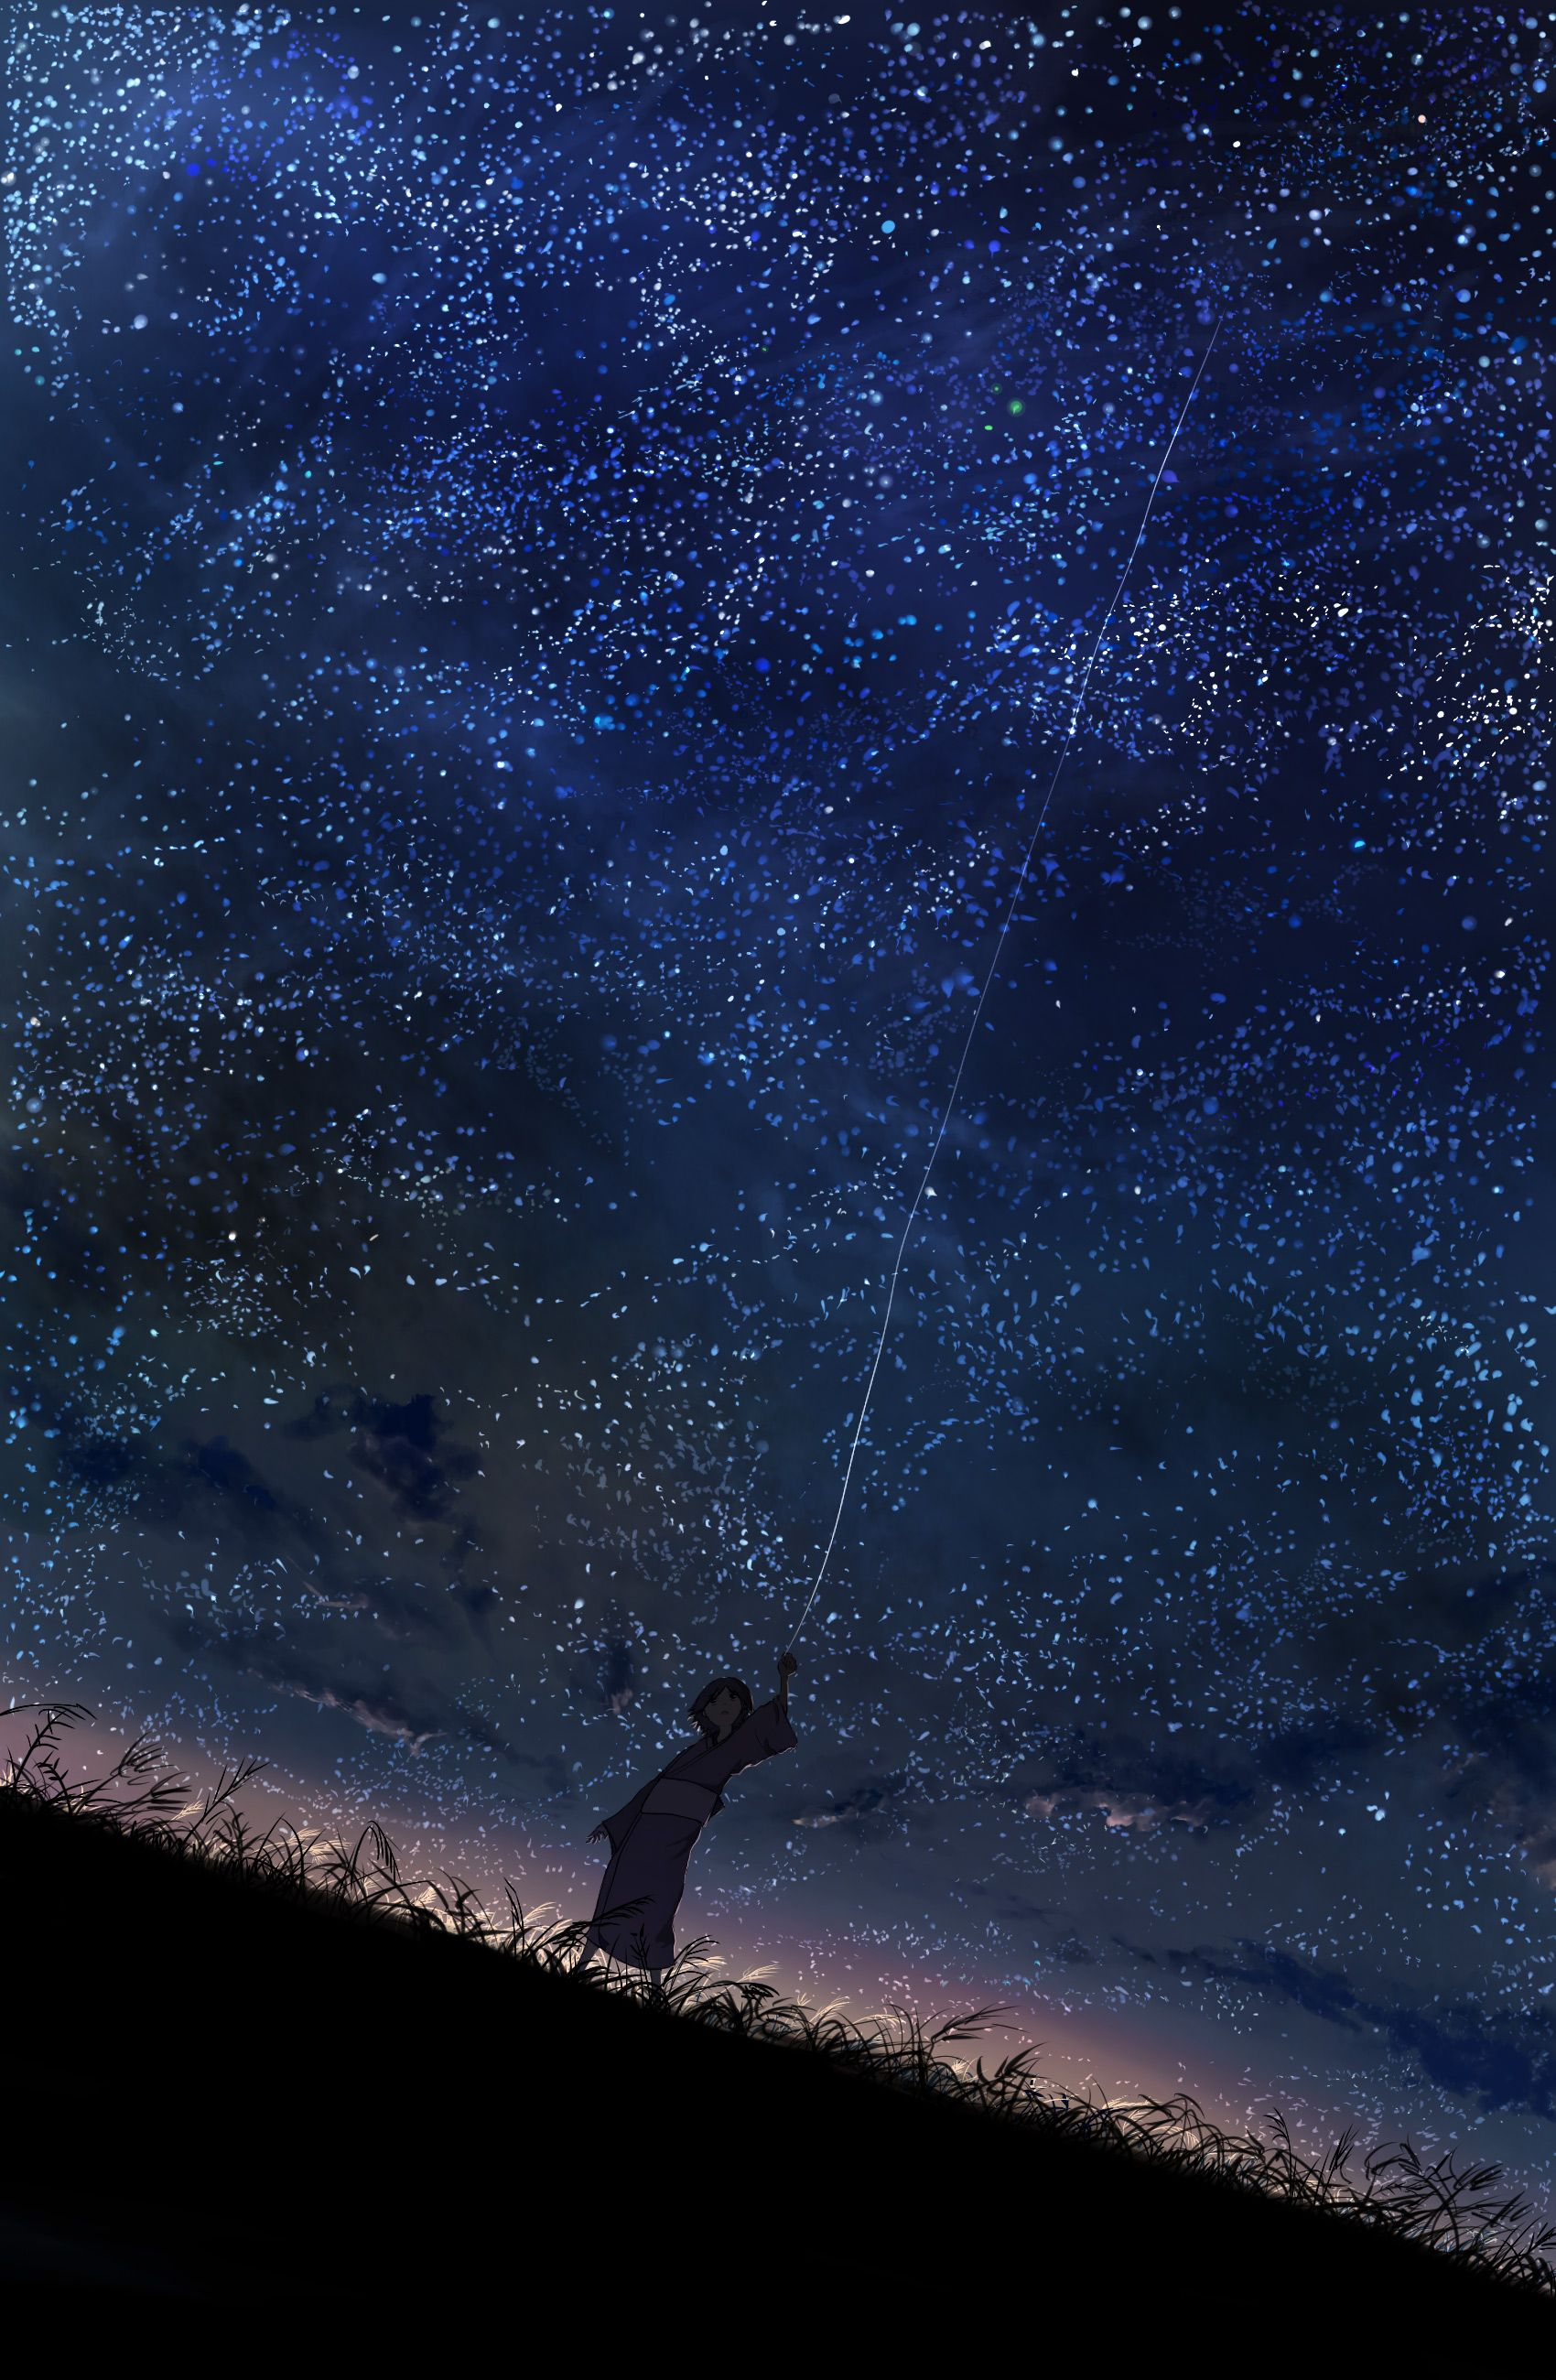 Stars Mushishi Night Sky Fresh New Hd Wallpaper [Your